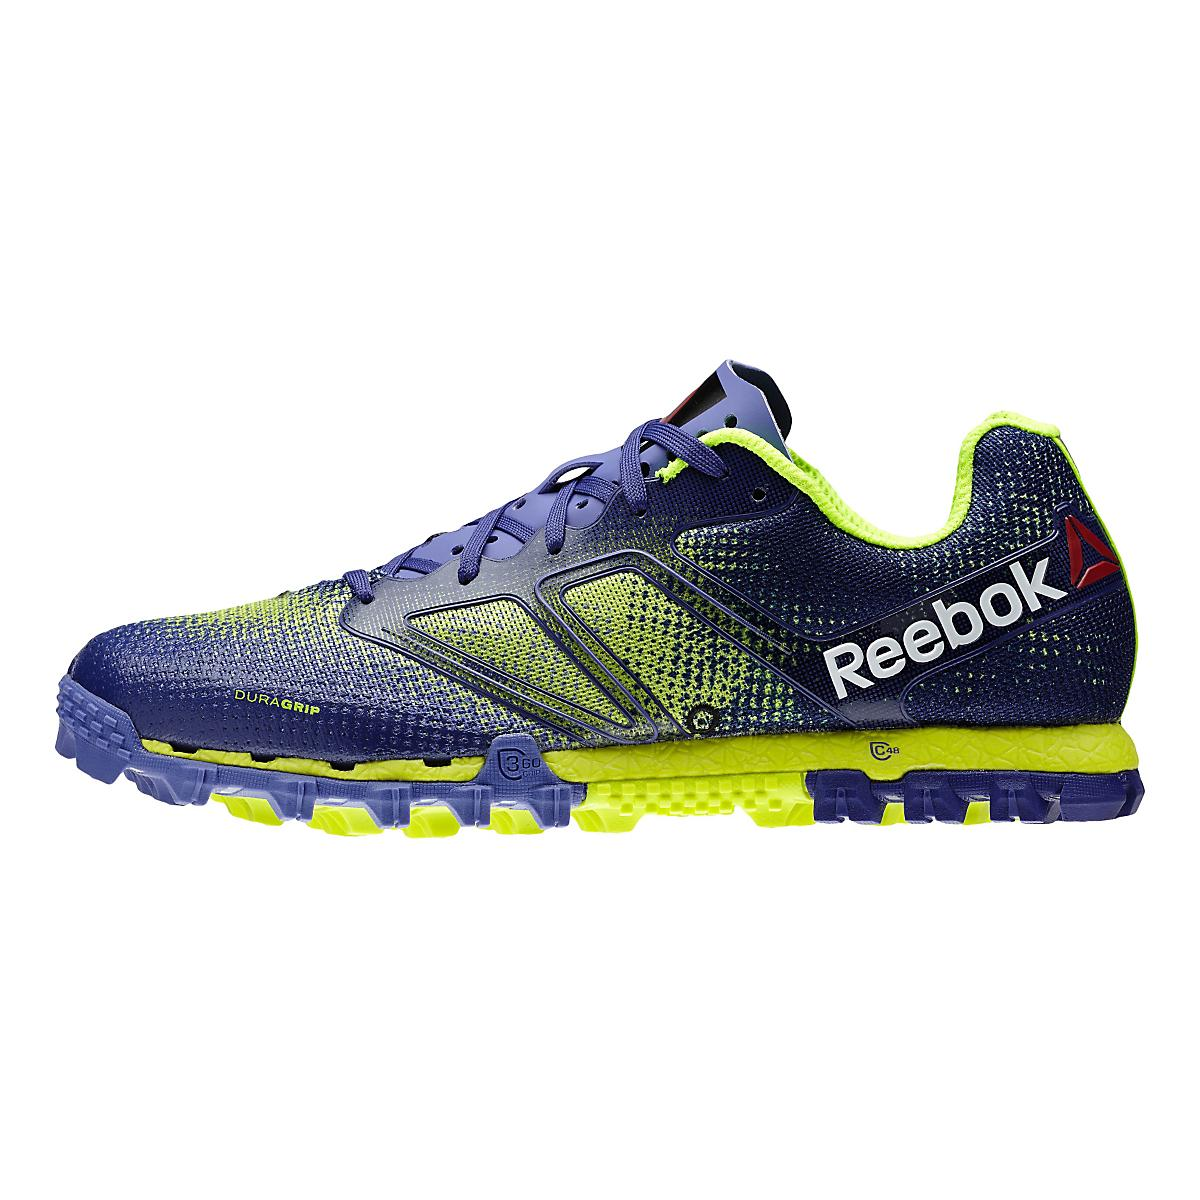 c097cff68 Womens Reebok All Terrain Super Running Shoe at Road Runner Sports